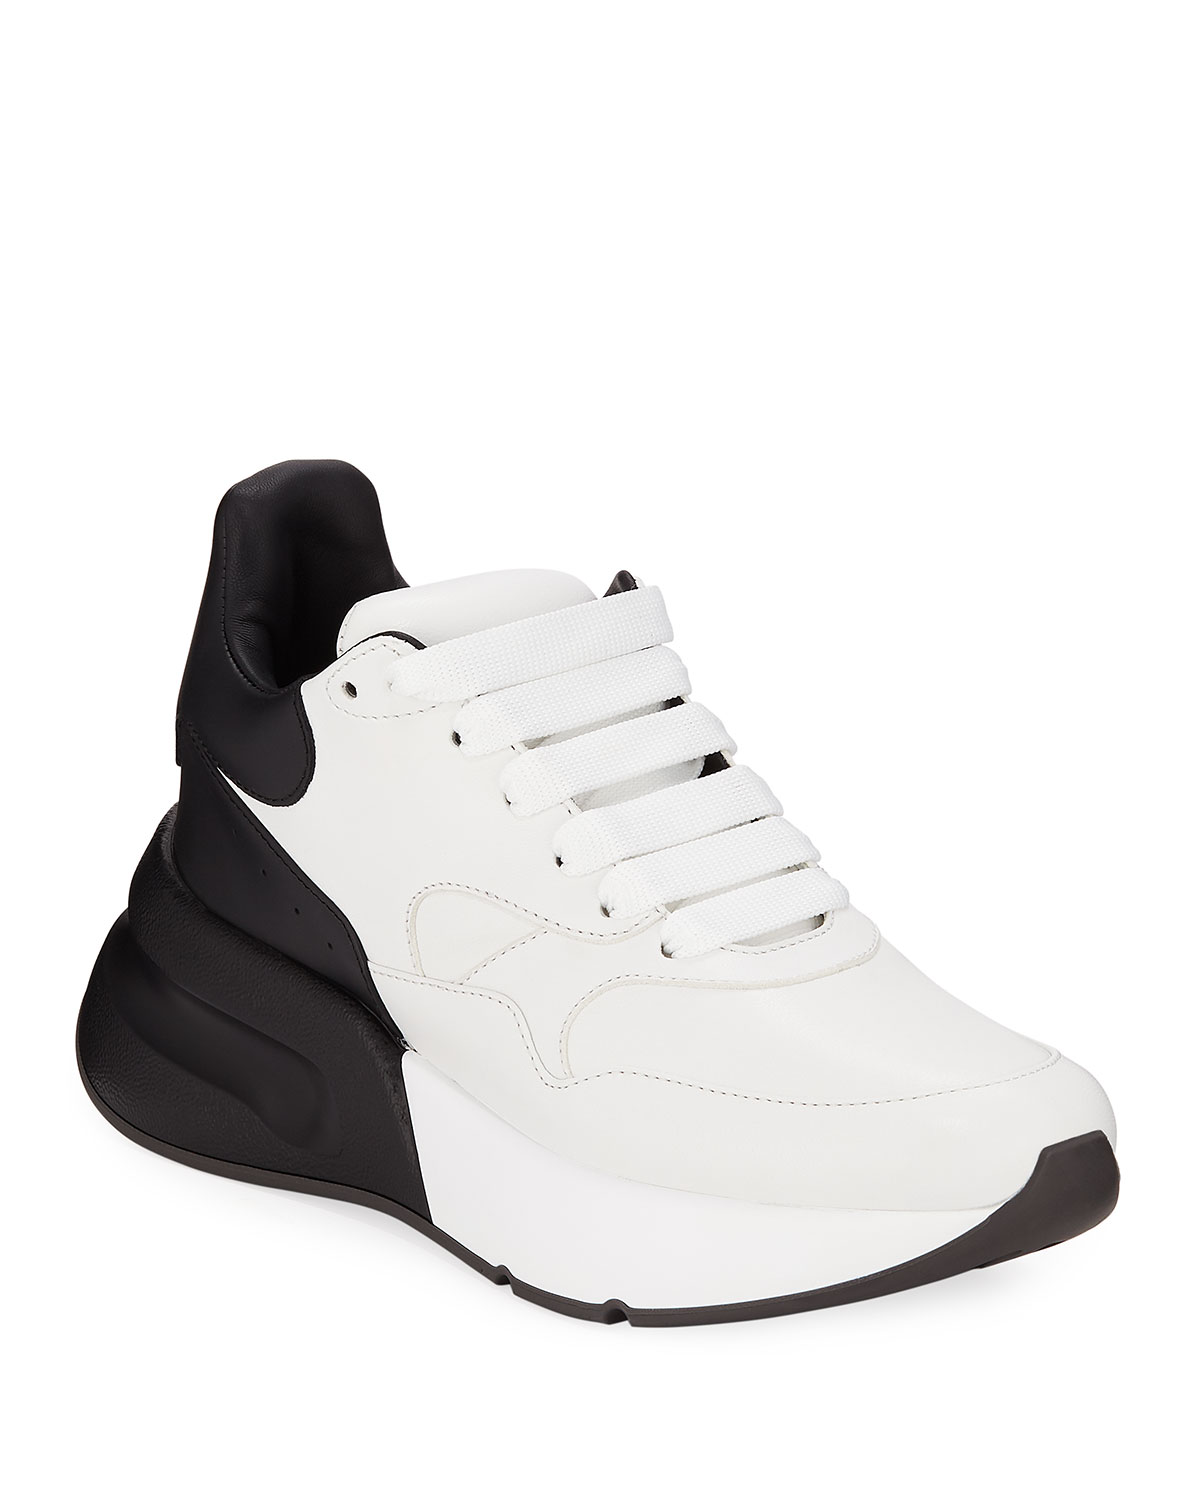 Alexander McQueen Two-Tone Runner Sneakers with Exaggerated Sole ... b1a8143b480e